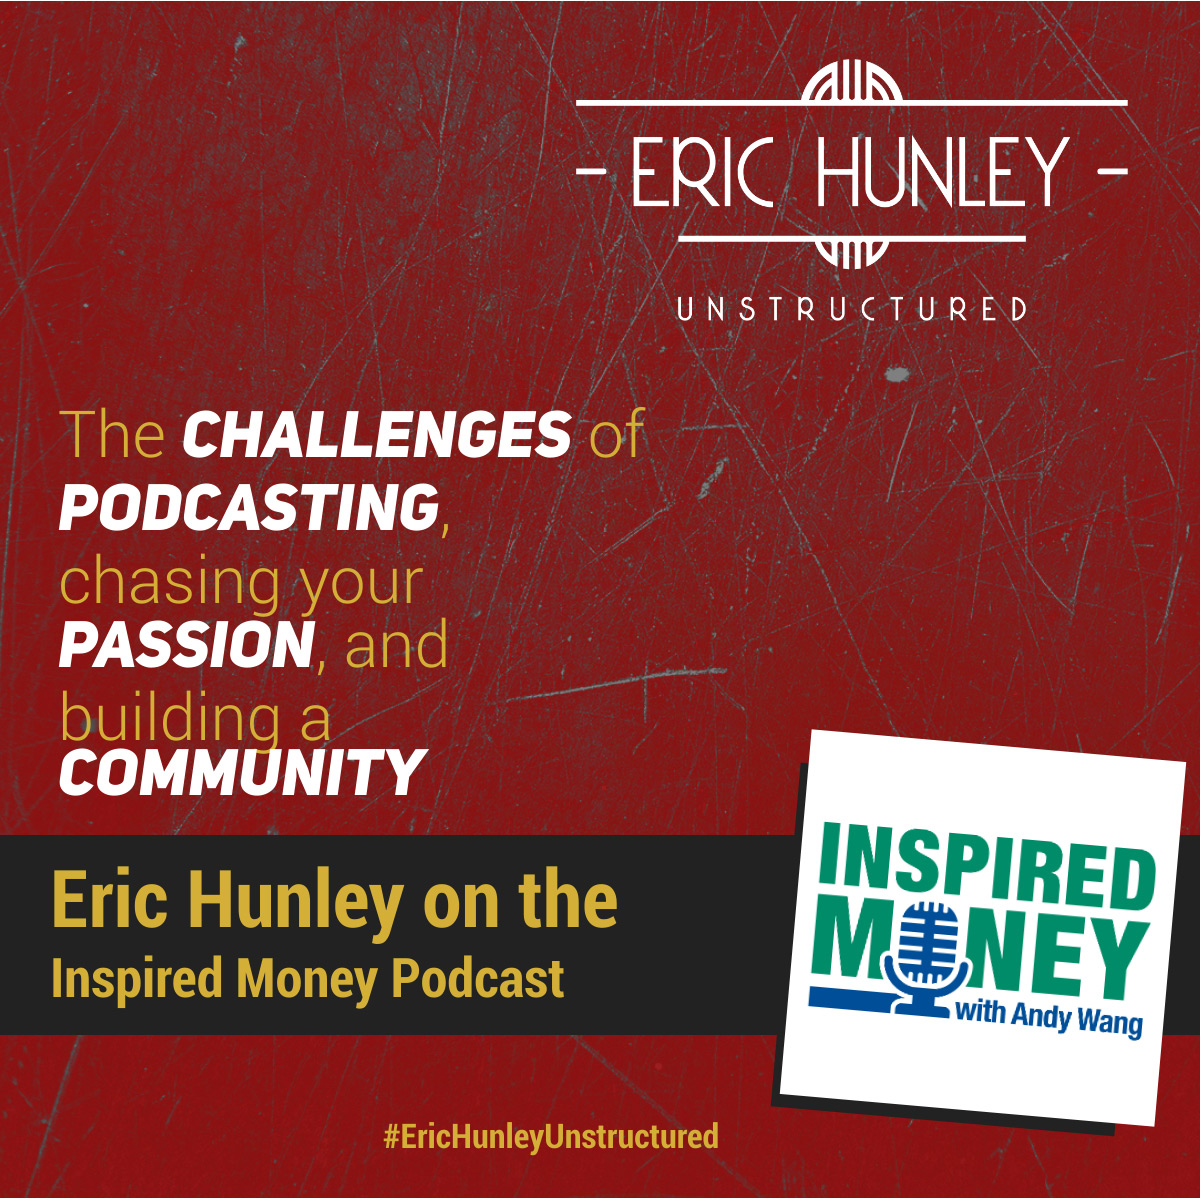 Eric Hunley Podcast Appearance Interviews - Inspired Money Podcast Podcast Square Post